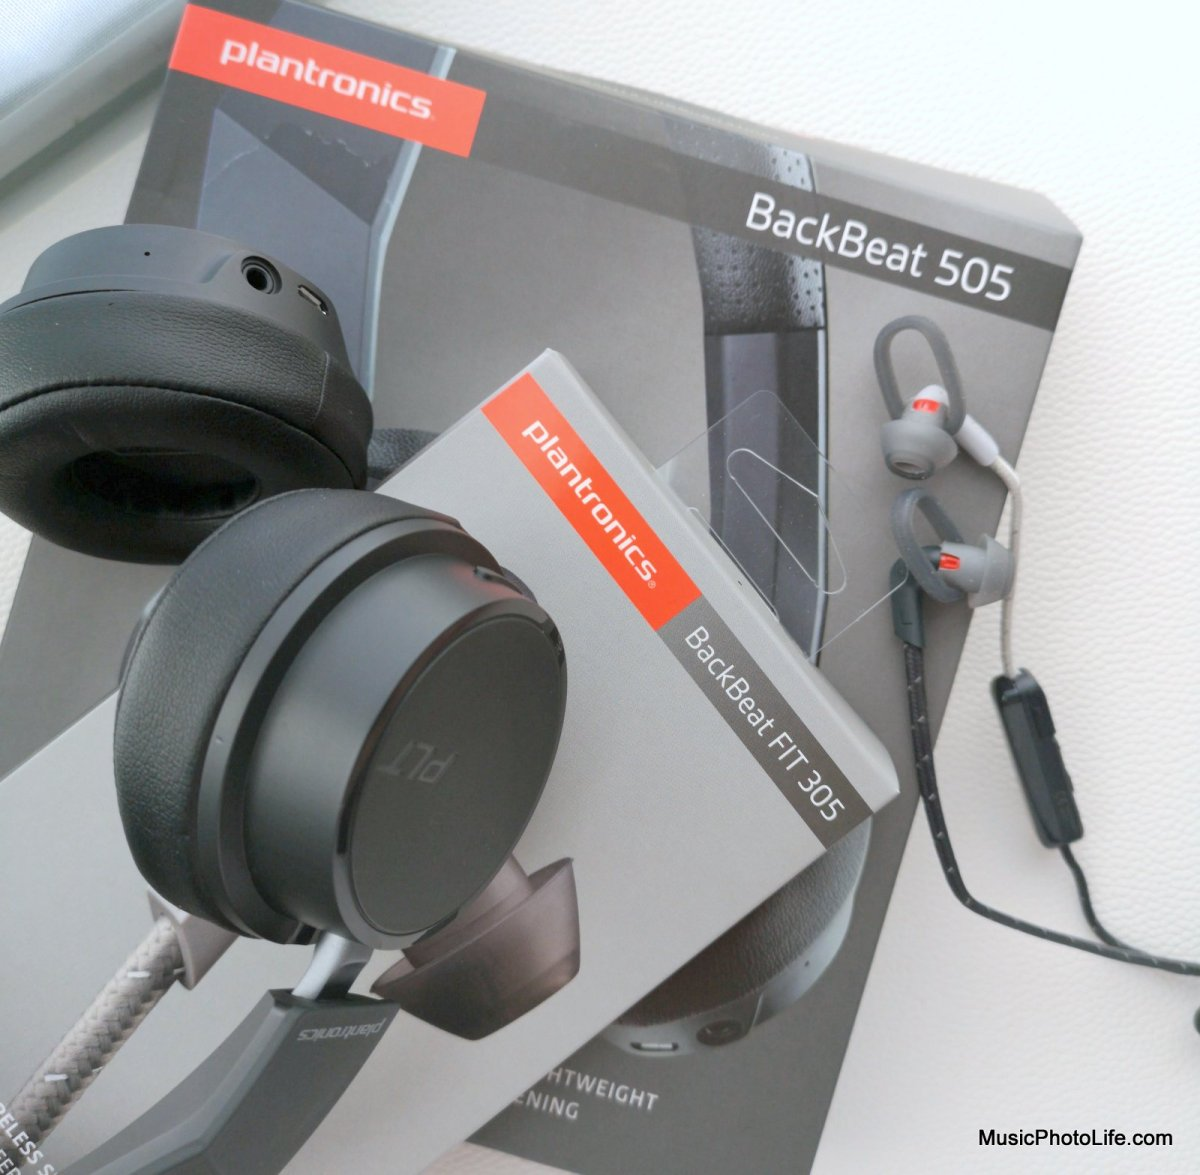 Plantronics BackBeat at 20% Discount with Coupon Code